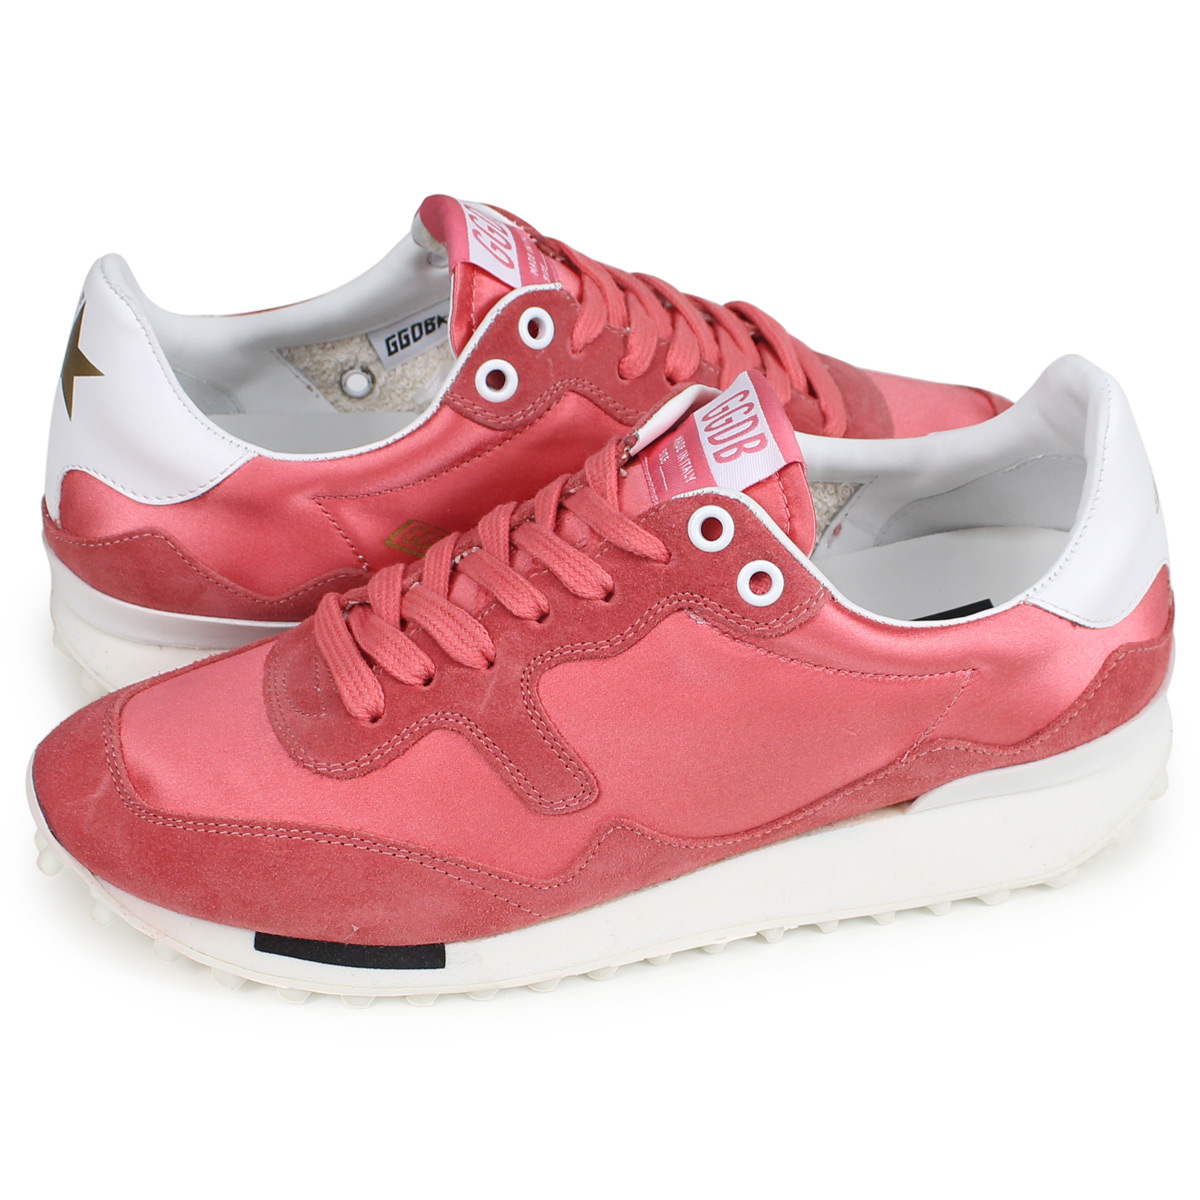 37c9d4dcd6 Golden Goose STARLAND golden goose sneakers Lady's star land SNEAKERS red  G33WS456 E6